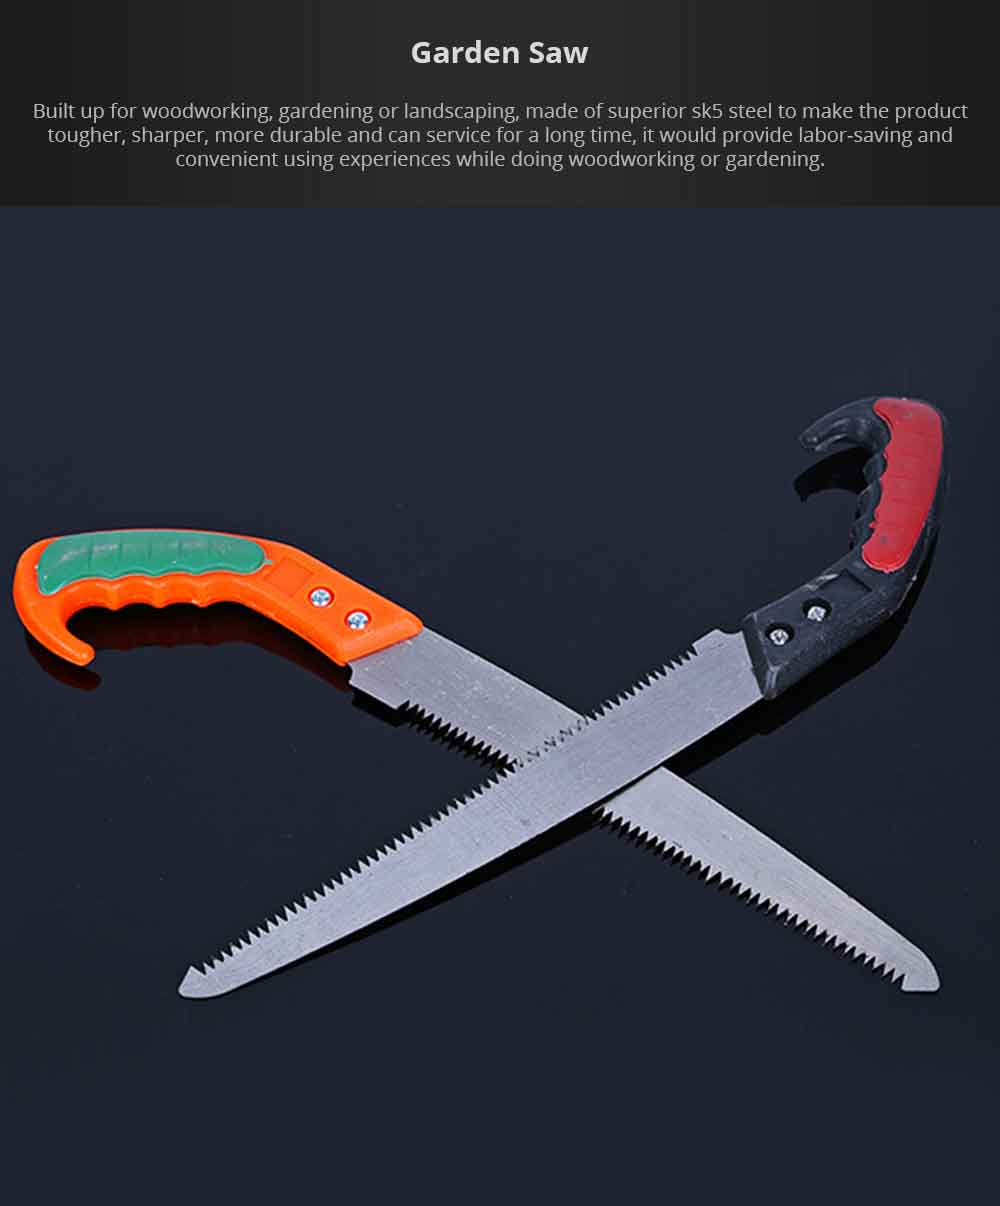 Multifunctional Garden Saw, Woodworking Pruning Saw Pruning Implements for Gardening, Landscaping 0